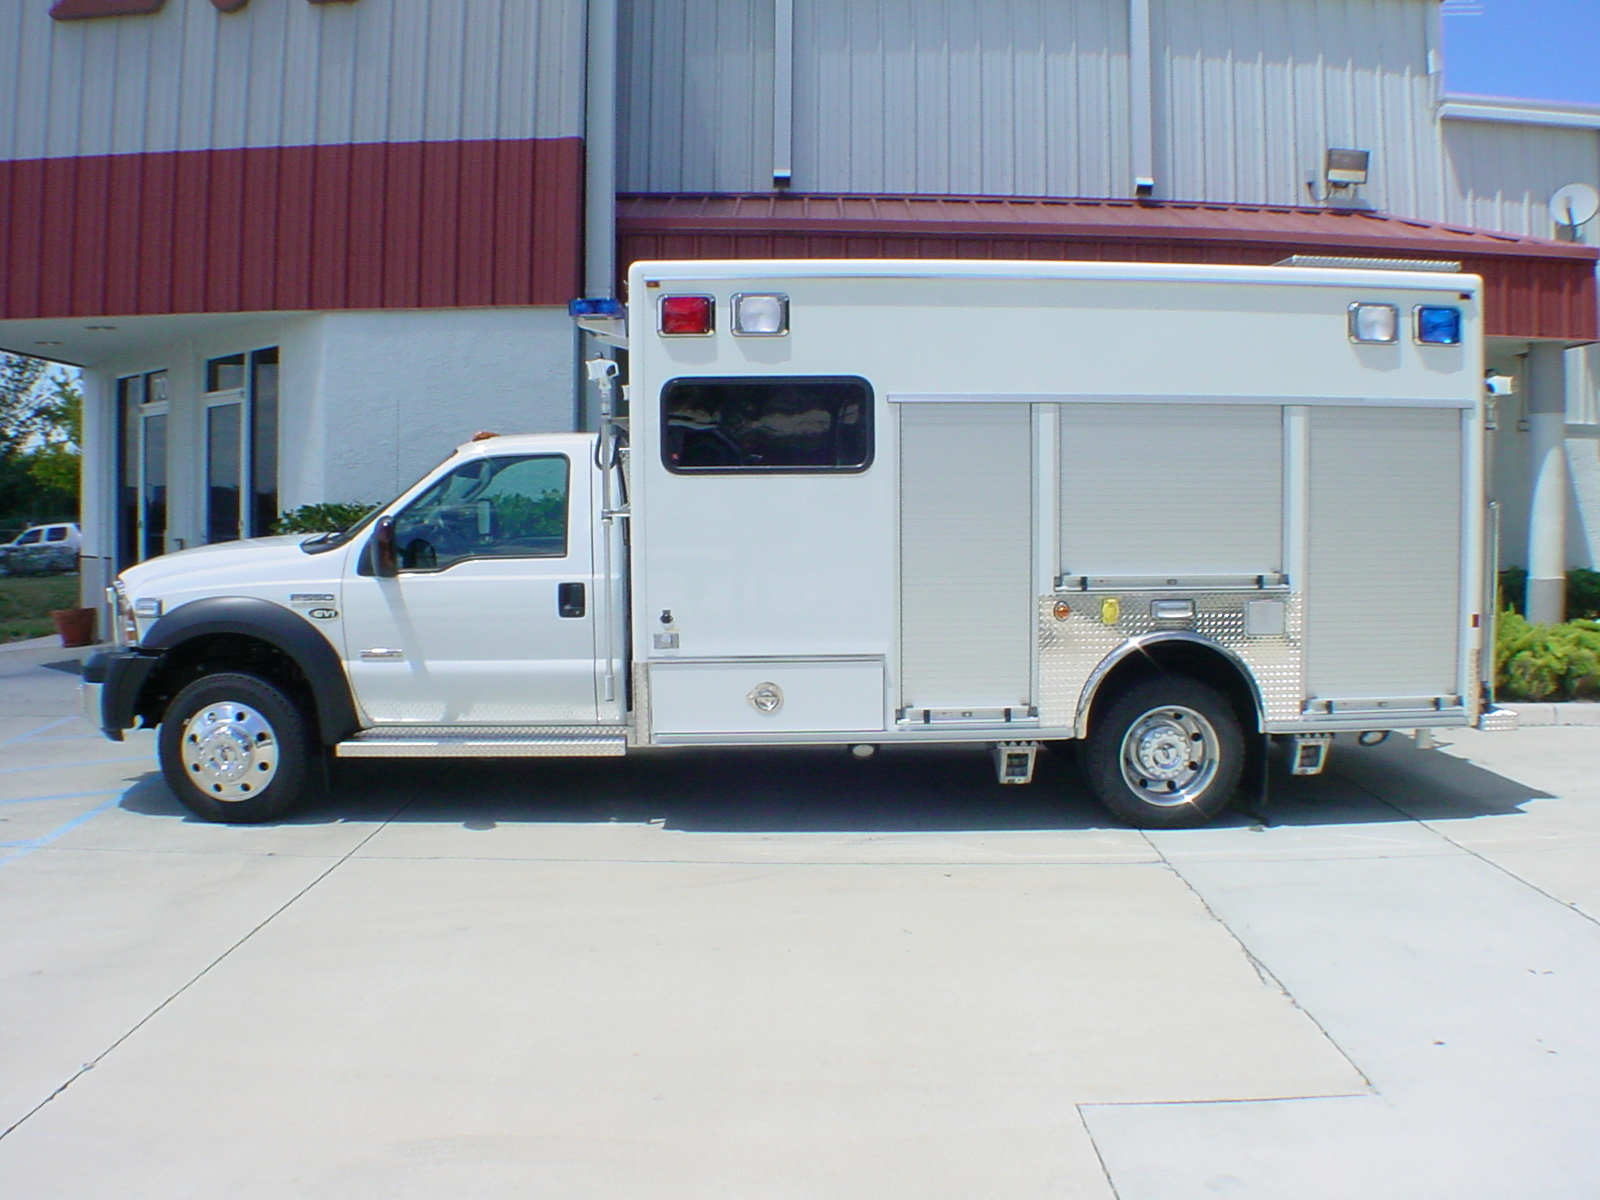 14-Ft. Crew Body Haz-Mat Vehicle